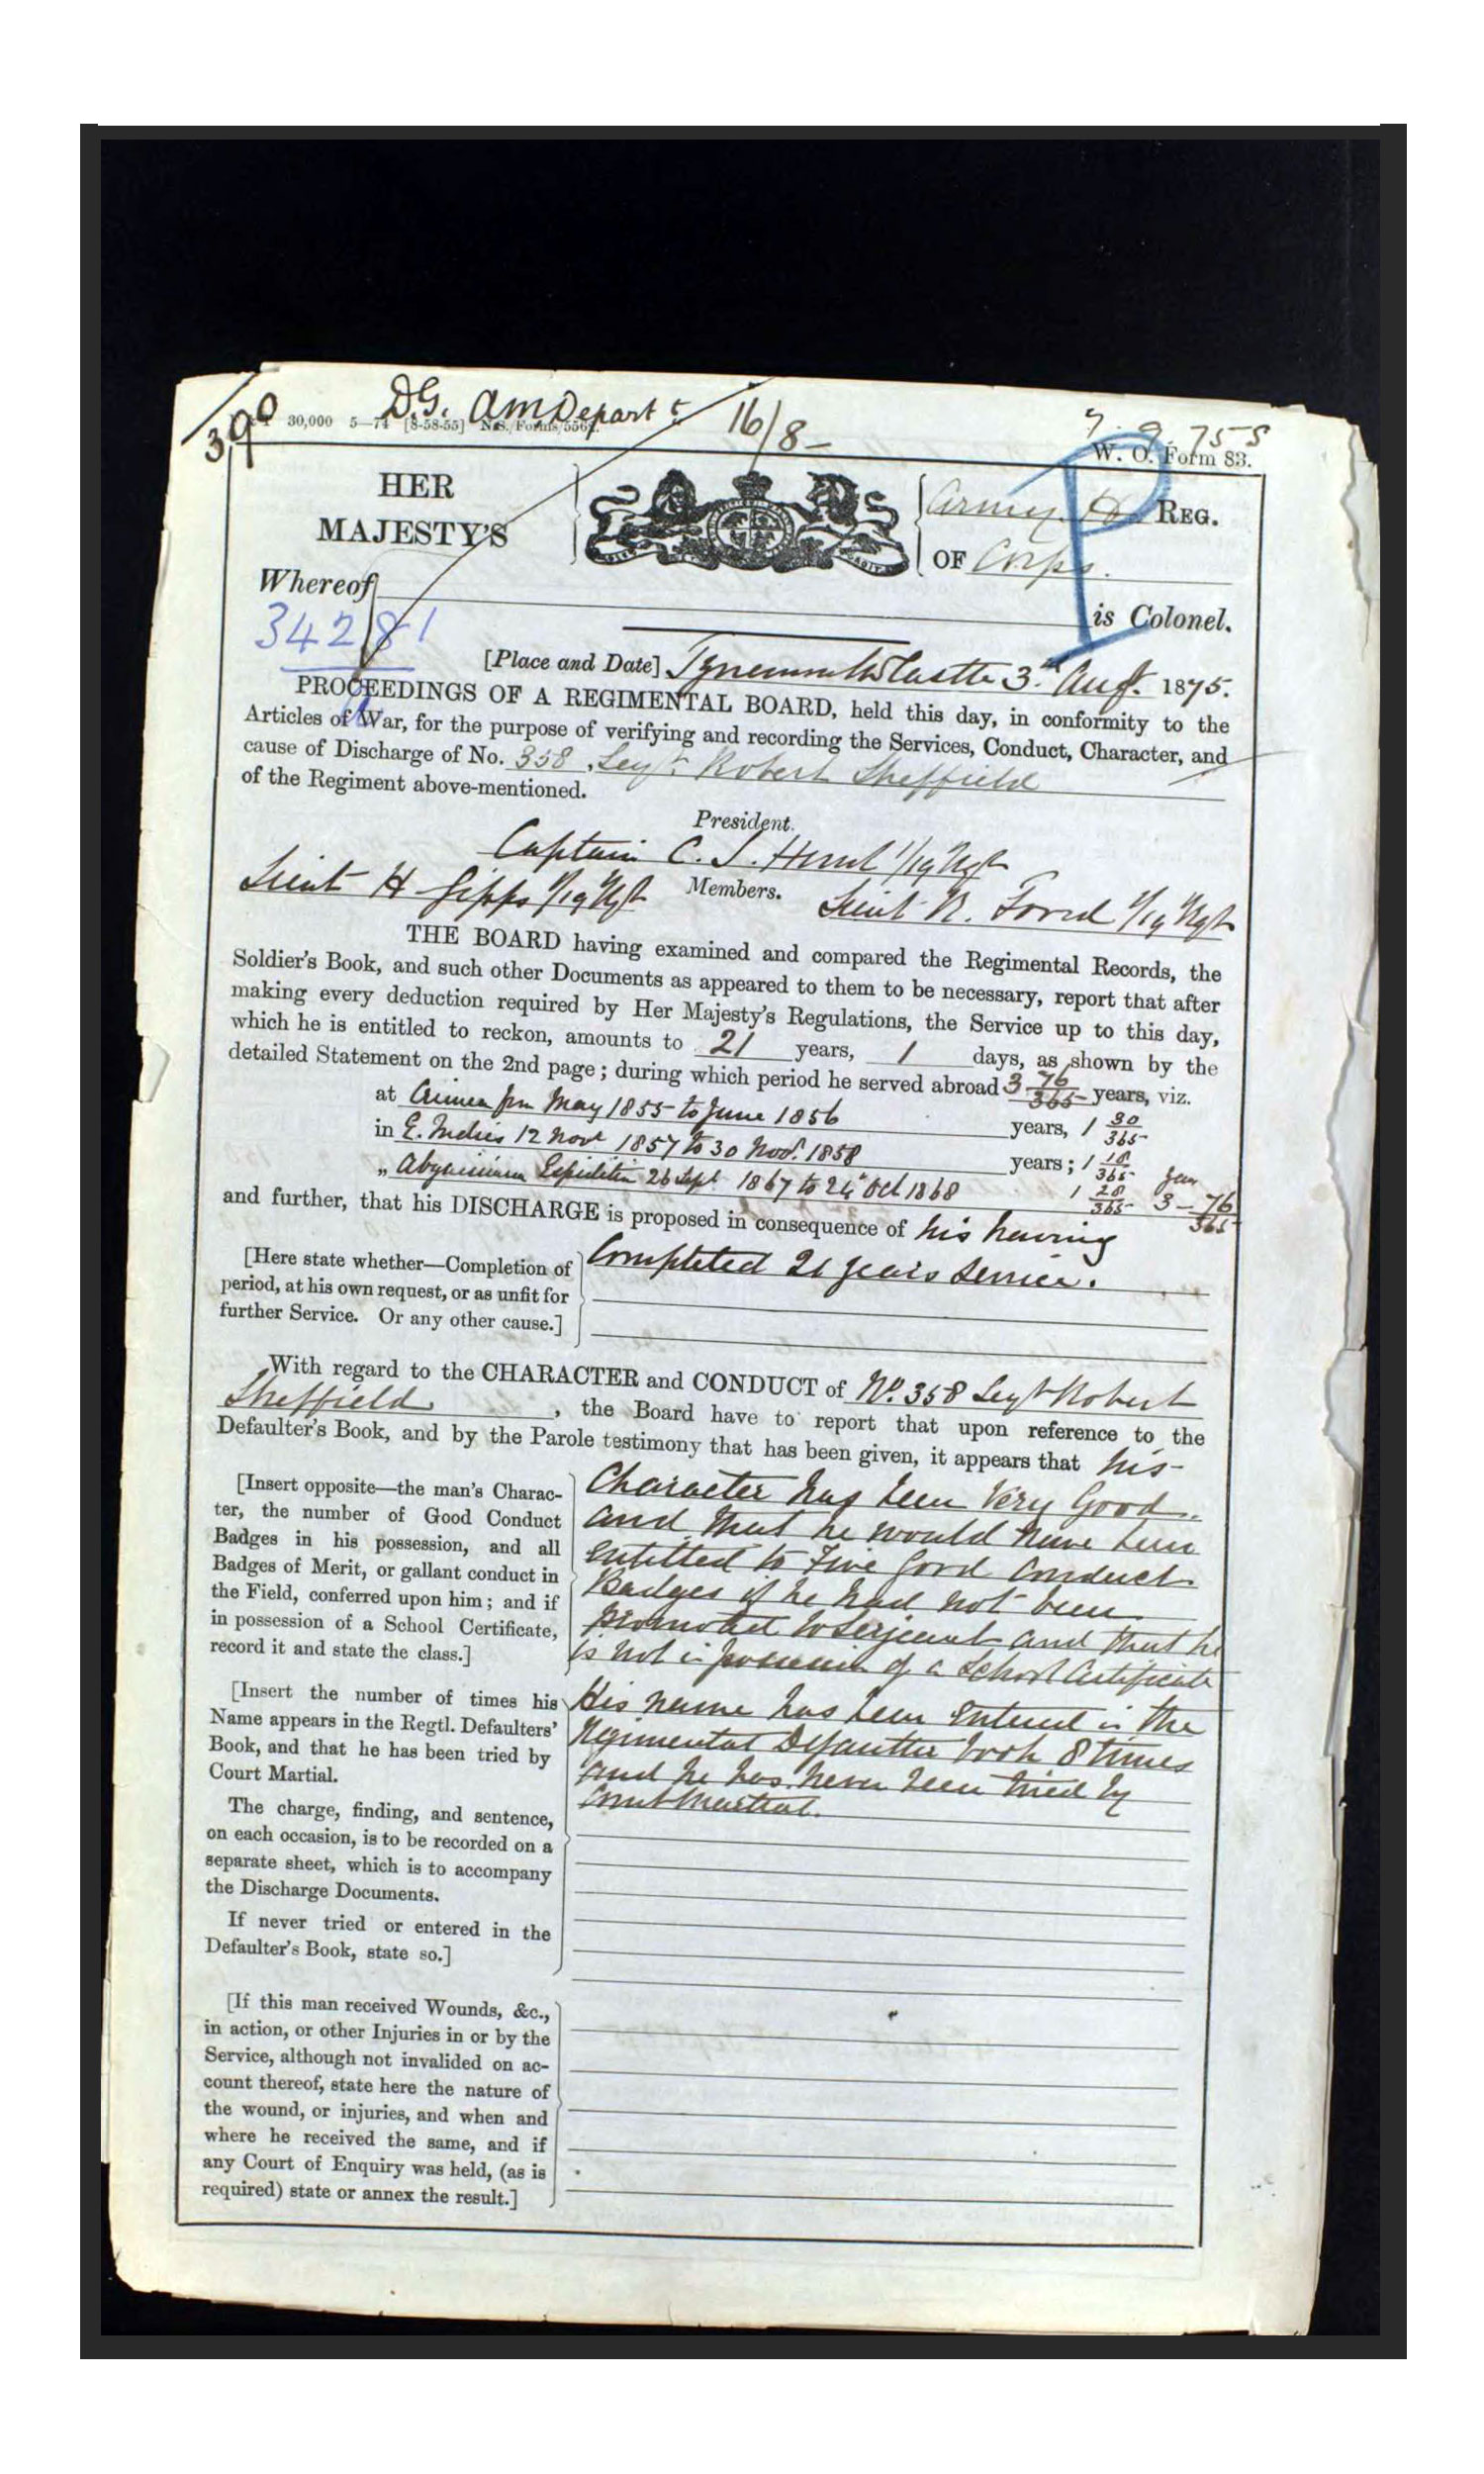 Robert Sheffield's discharge papers, 1876.